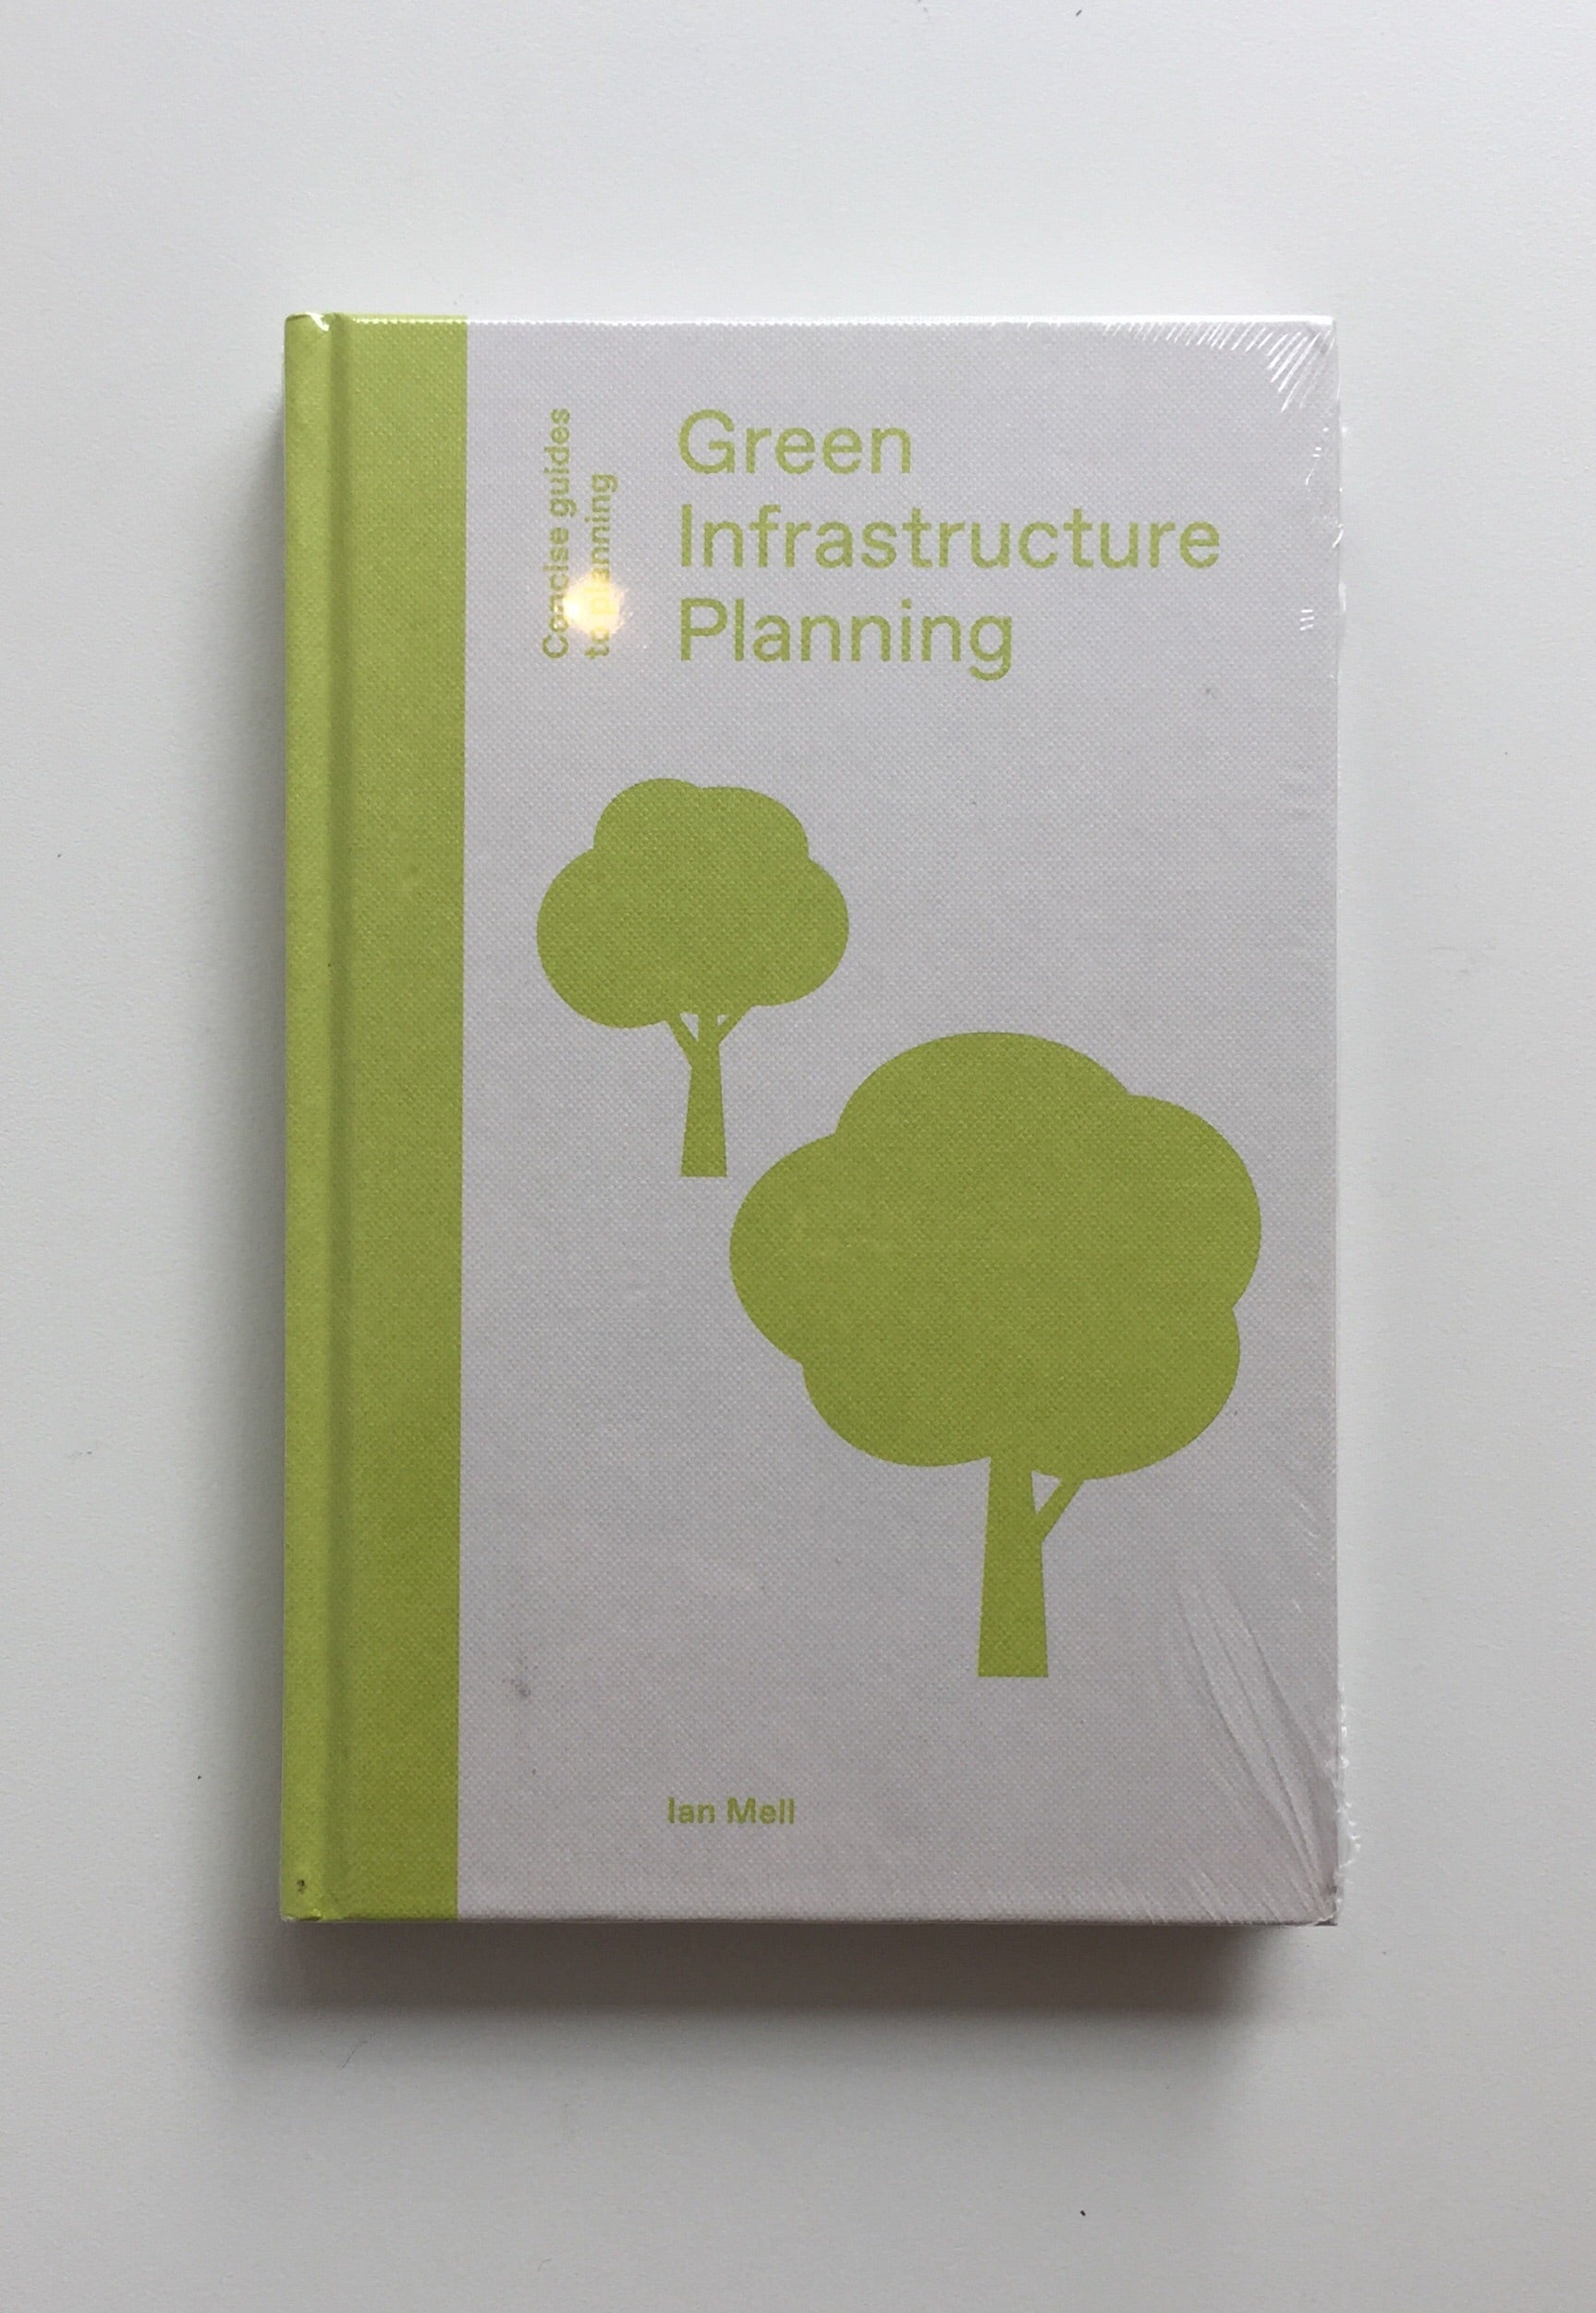 Green Infrastructure Planning Reintegrating Landscape in Urban Planning by Ian Mell